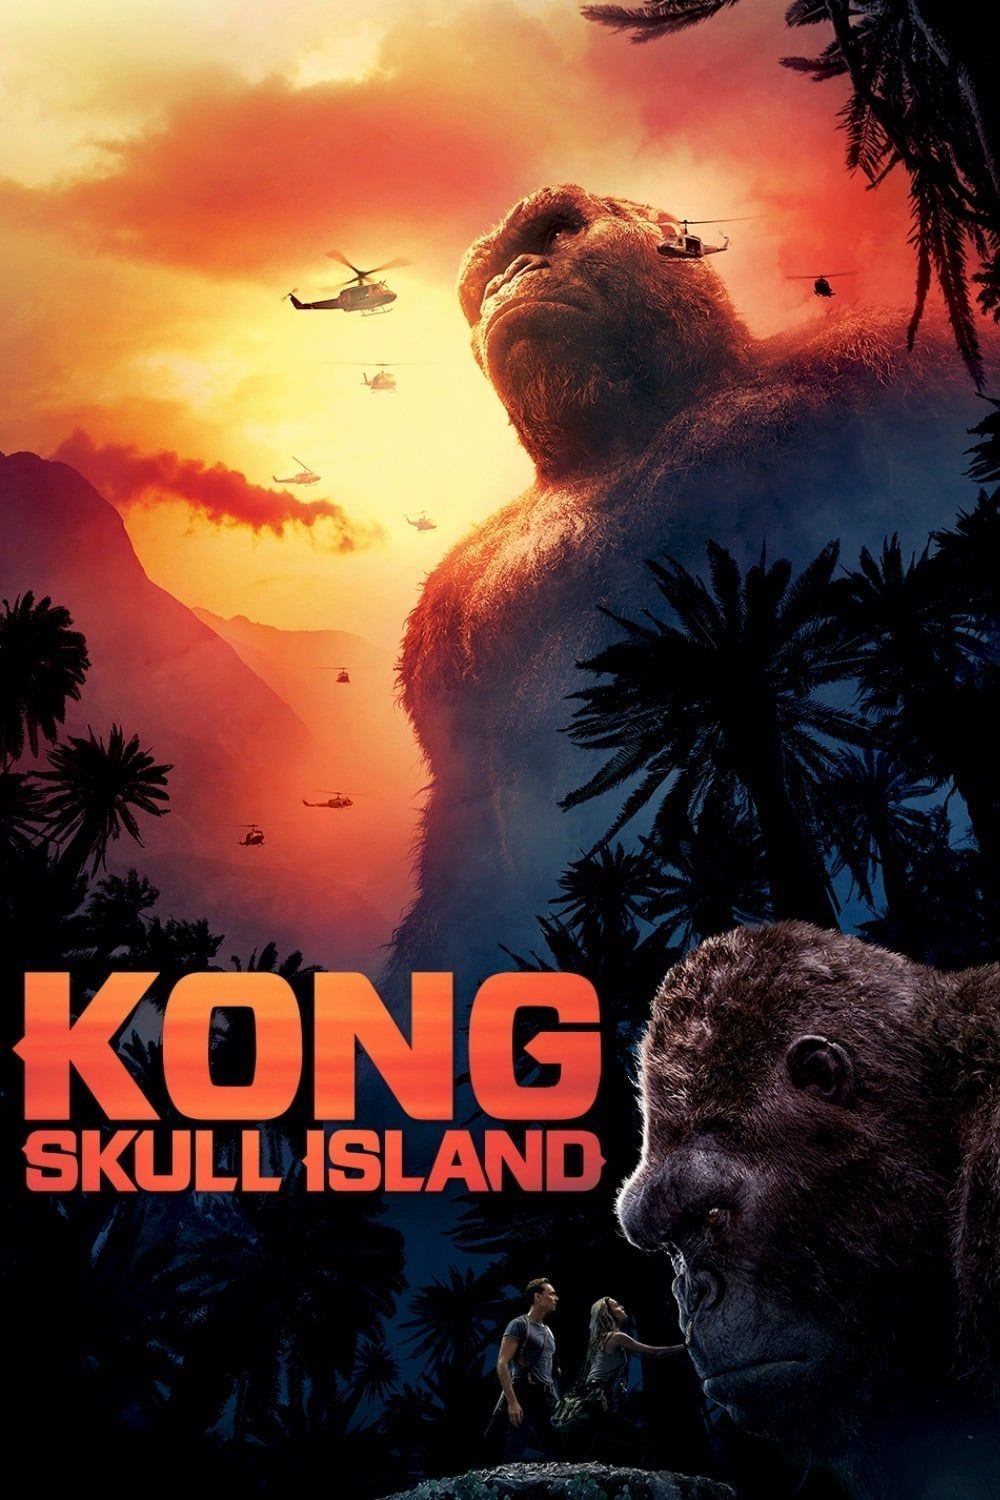 Pin by Barbara Jones on Movies Skull island movie, Skull